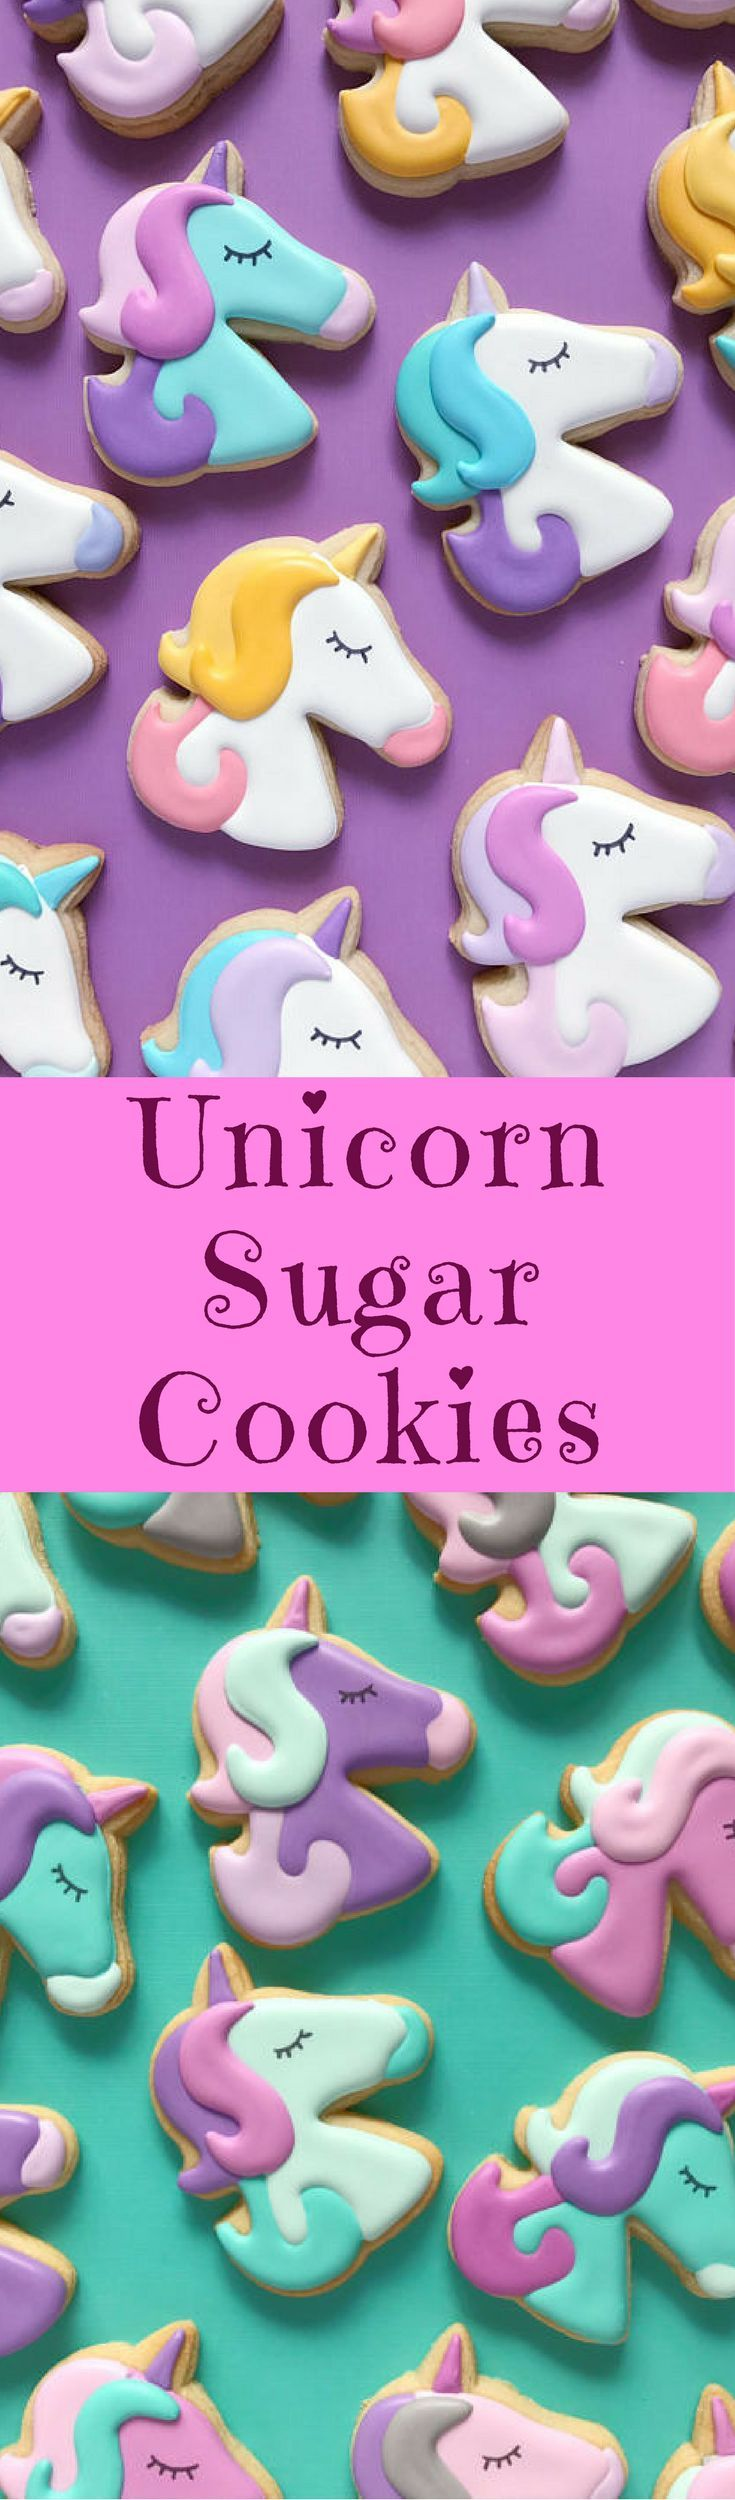 Unicorn Sugar Cookies! Birthday Party Favors Ideas, Girl Birthday Tea Party, Horse Show, Slumber Party Ideas, Little Girl Birthday Party Ideas, Princess Party, Outdoor Party Favor Snacks, Sorority Party, Dorm Sorority Party, Little Pony Party, Royal Whimsical Theme Party #affiliatelink